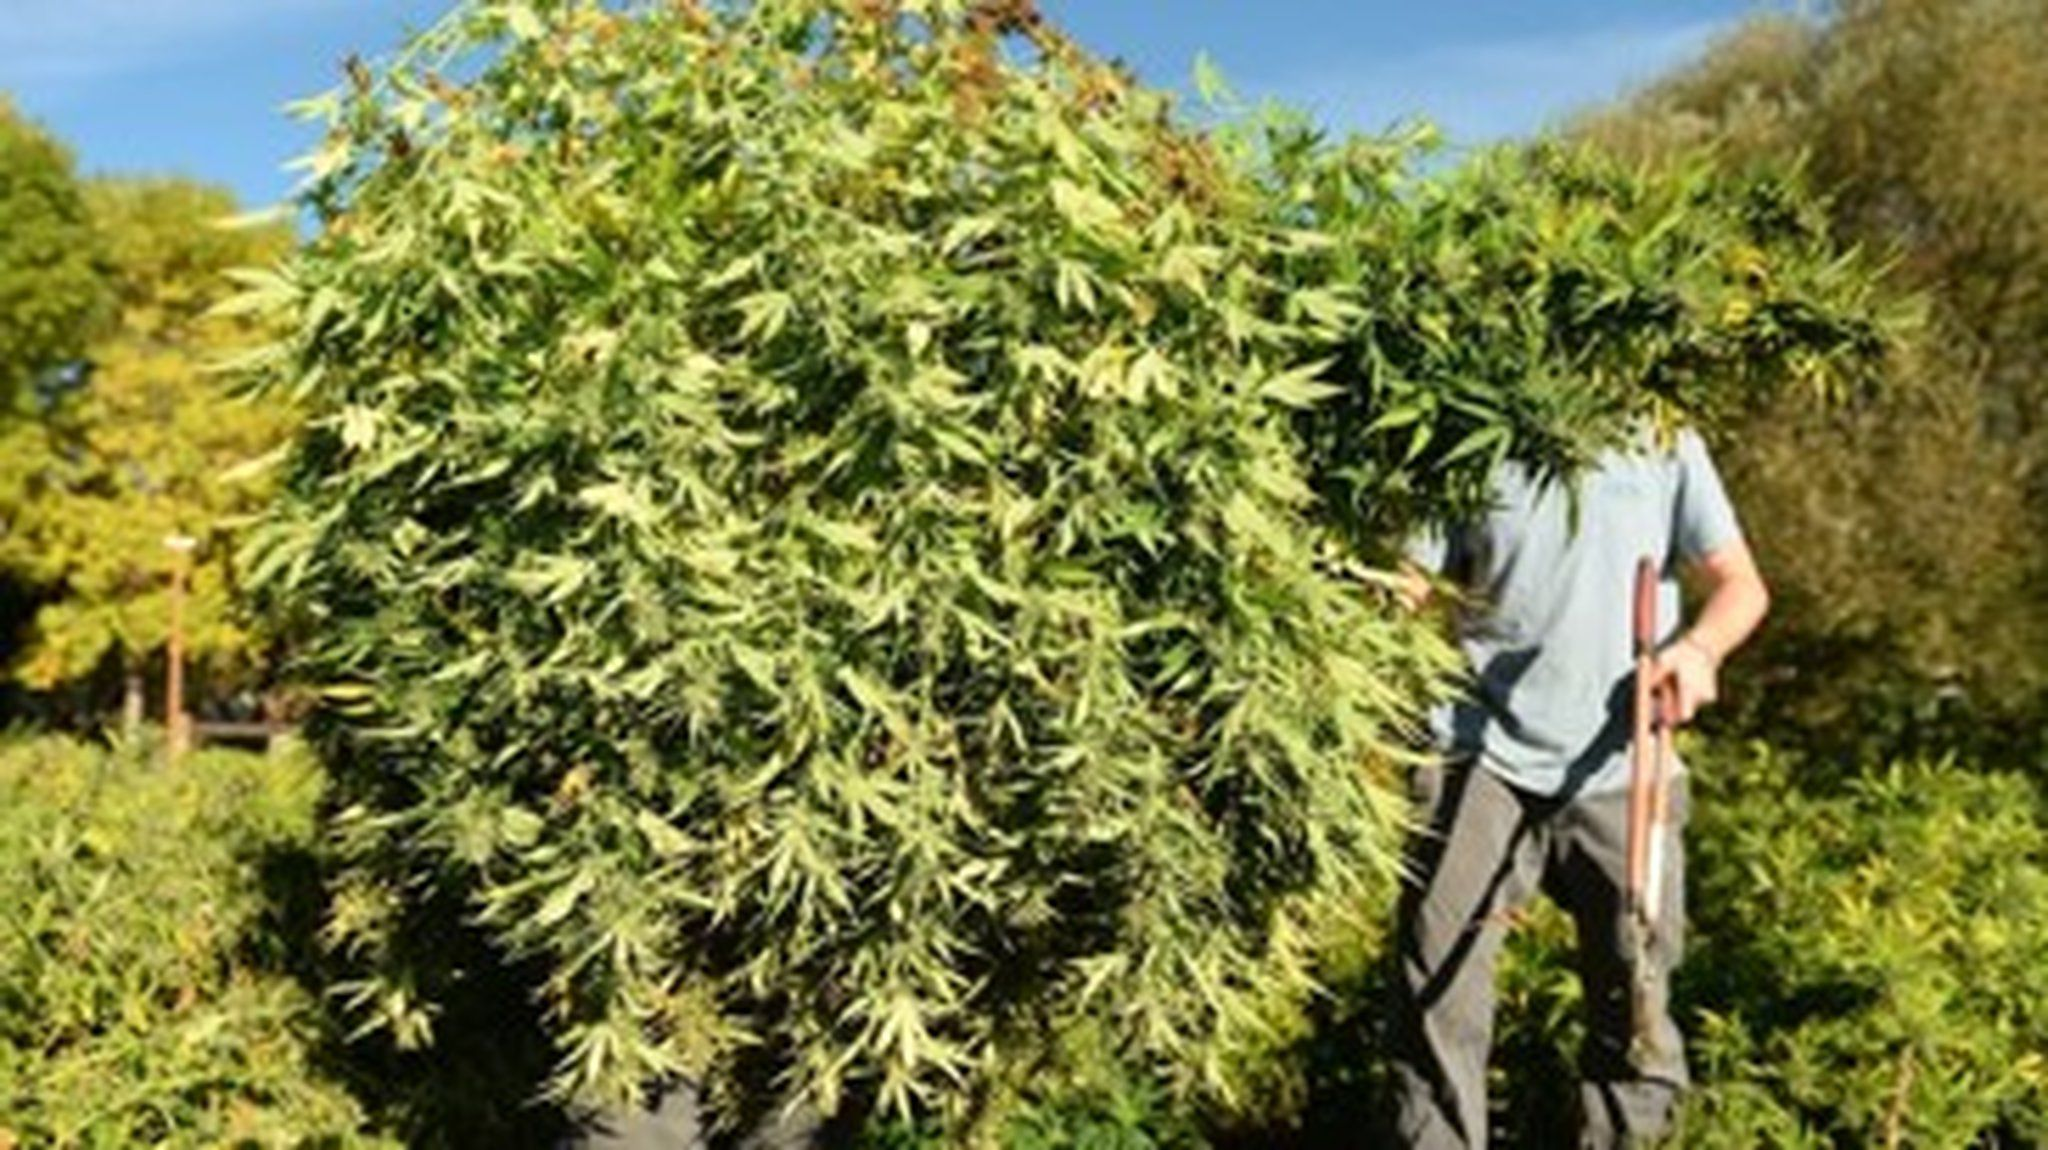 Ohio To Accept Hemp Growing Applications Starting Today